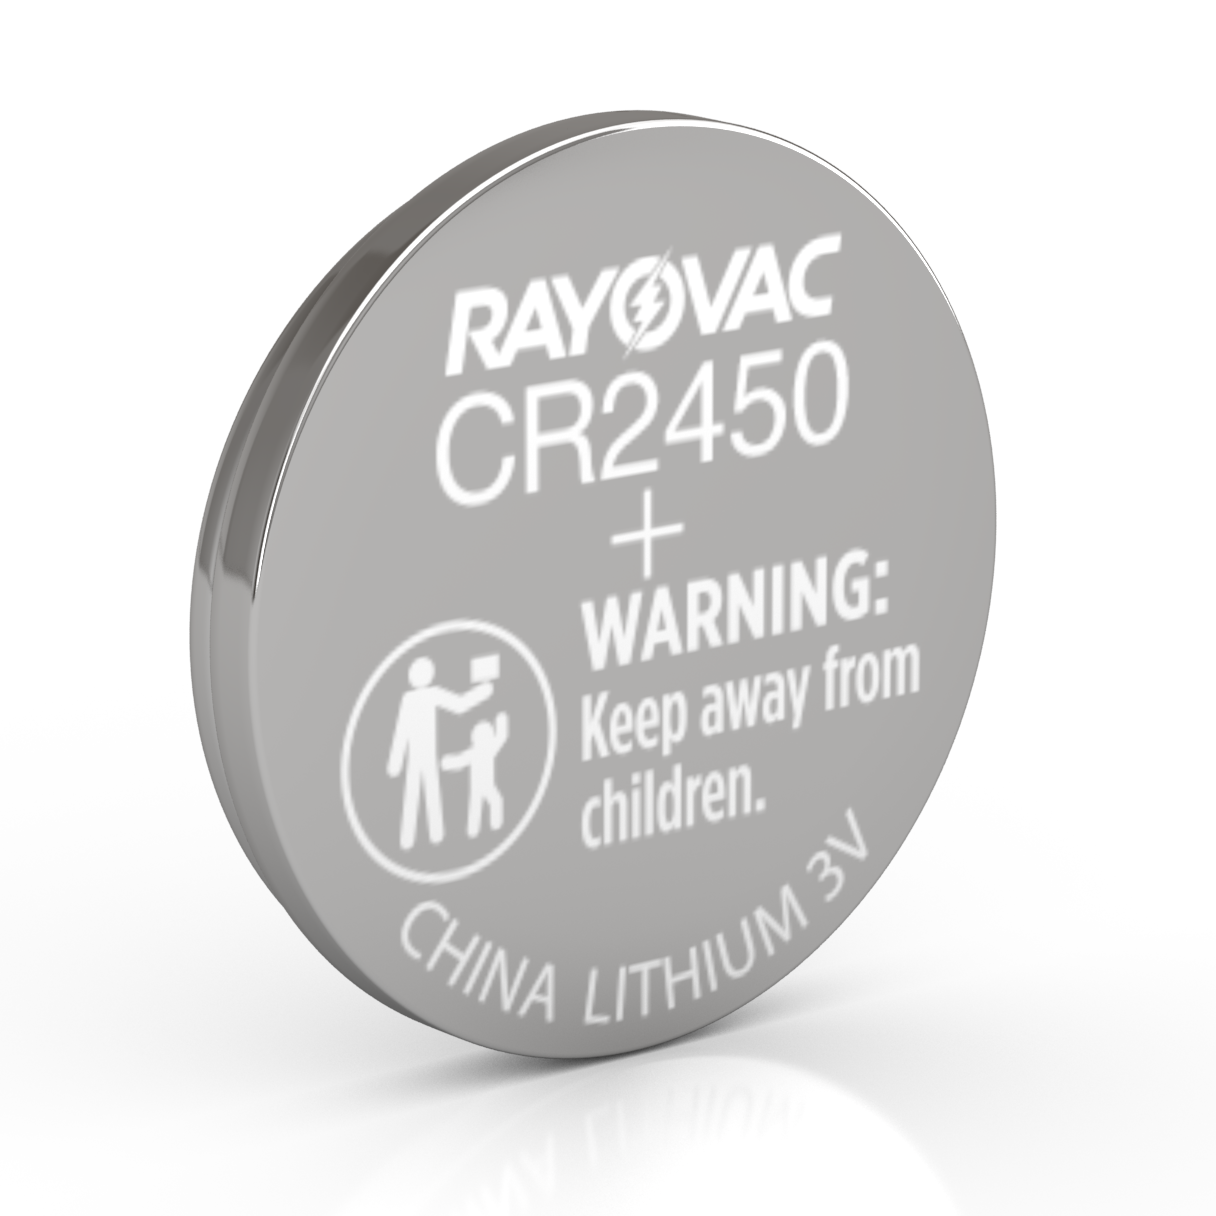 CR2450 Lithium Coin Cell Battery image